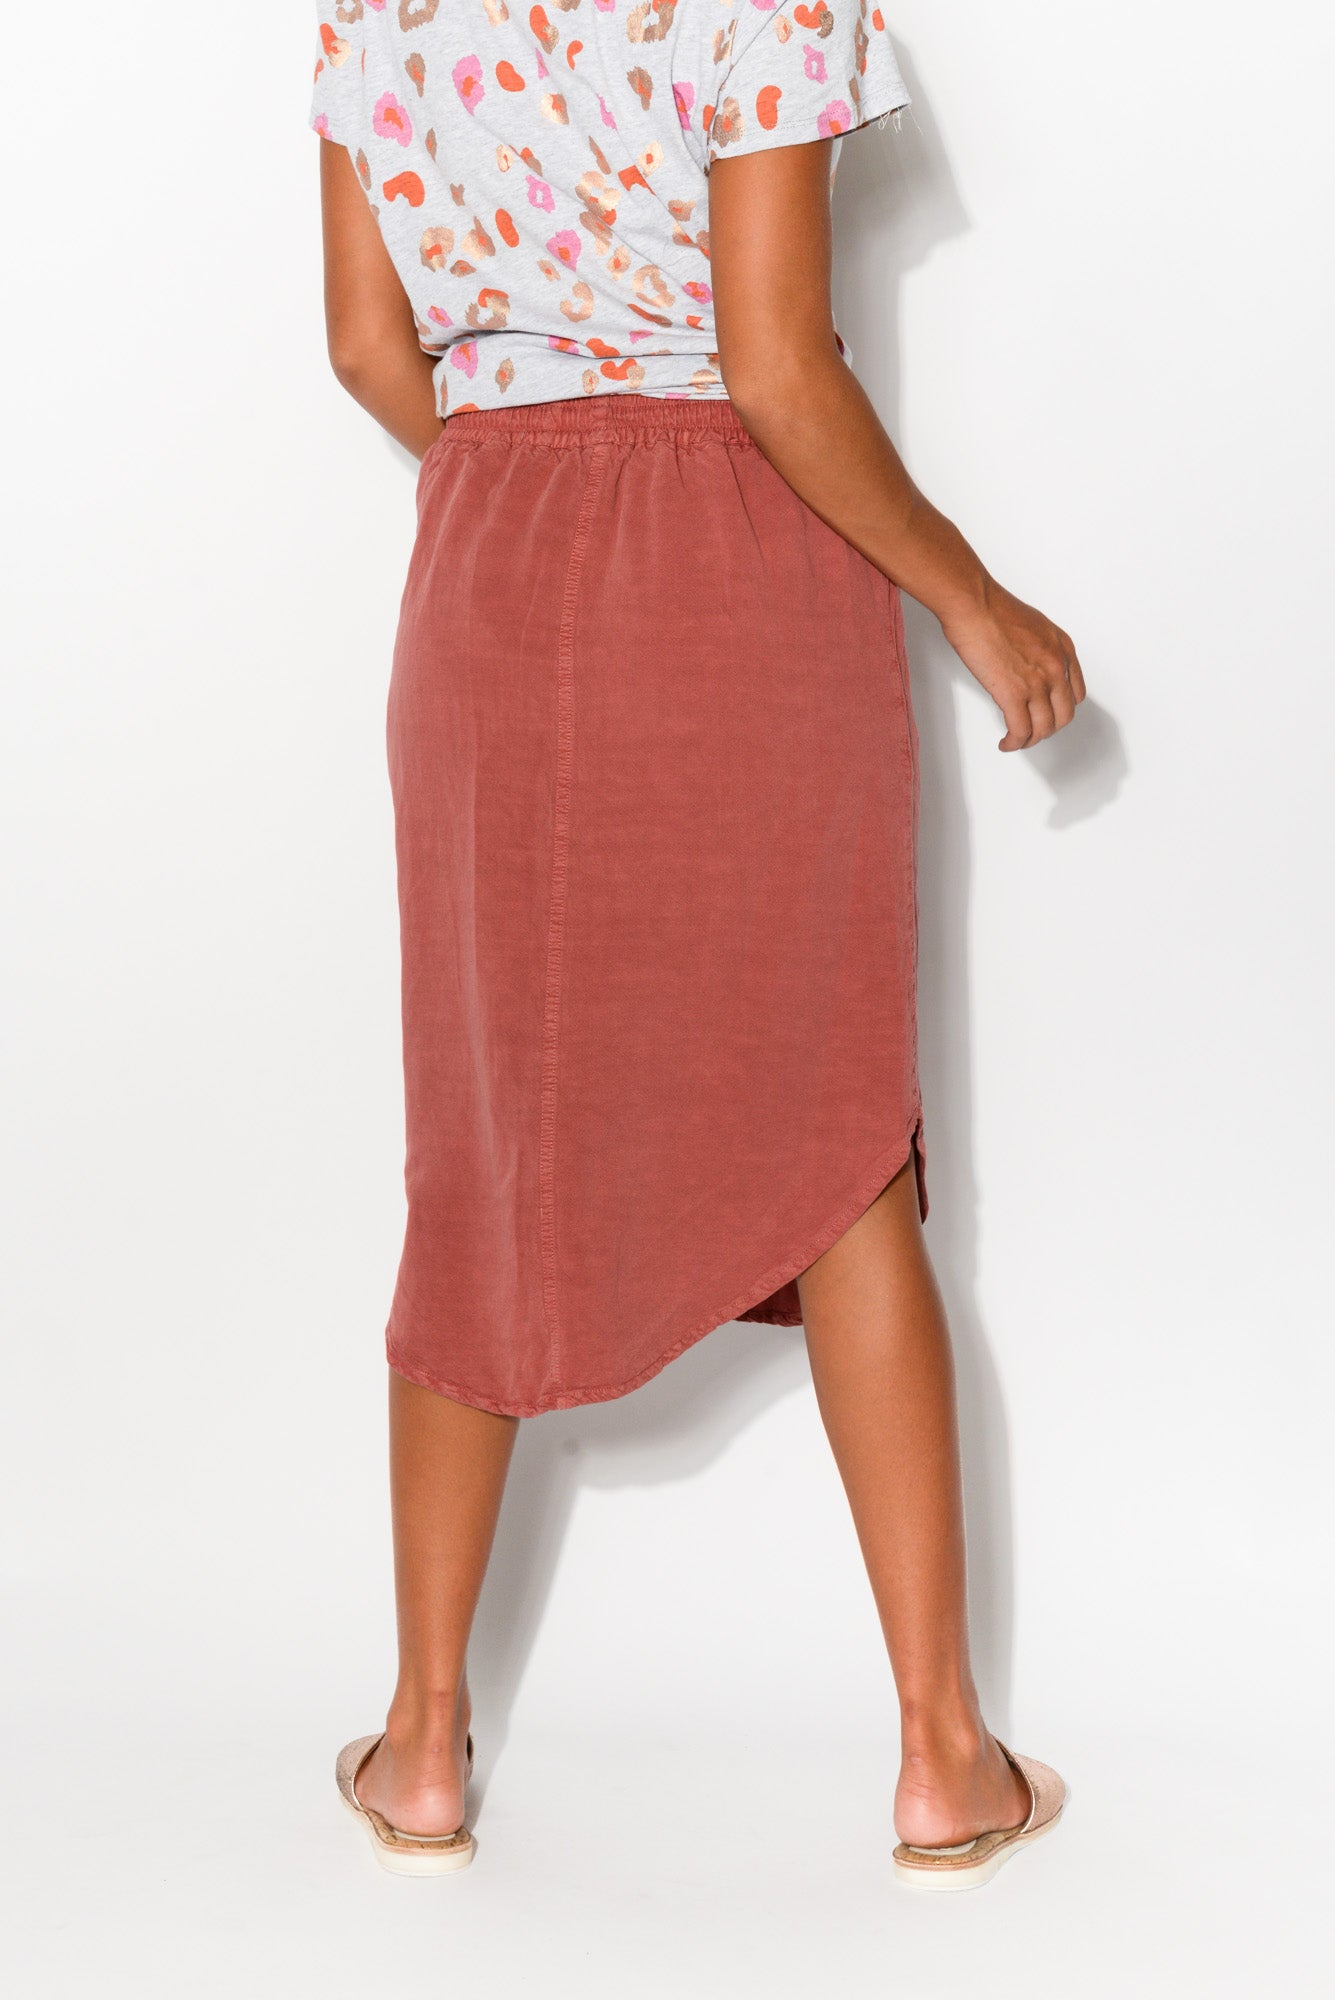 Sennia Rose Zip Pocket Skirt - Blue Bungalow